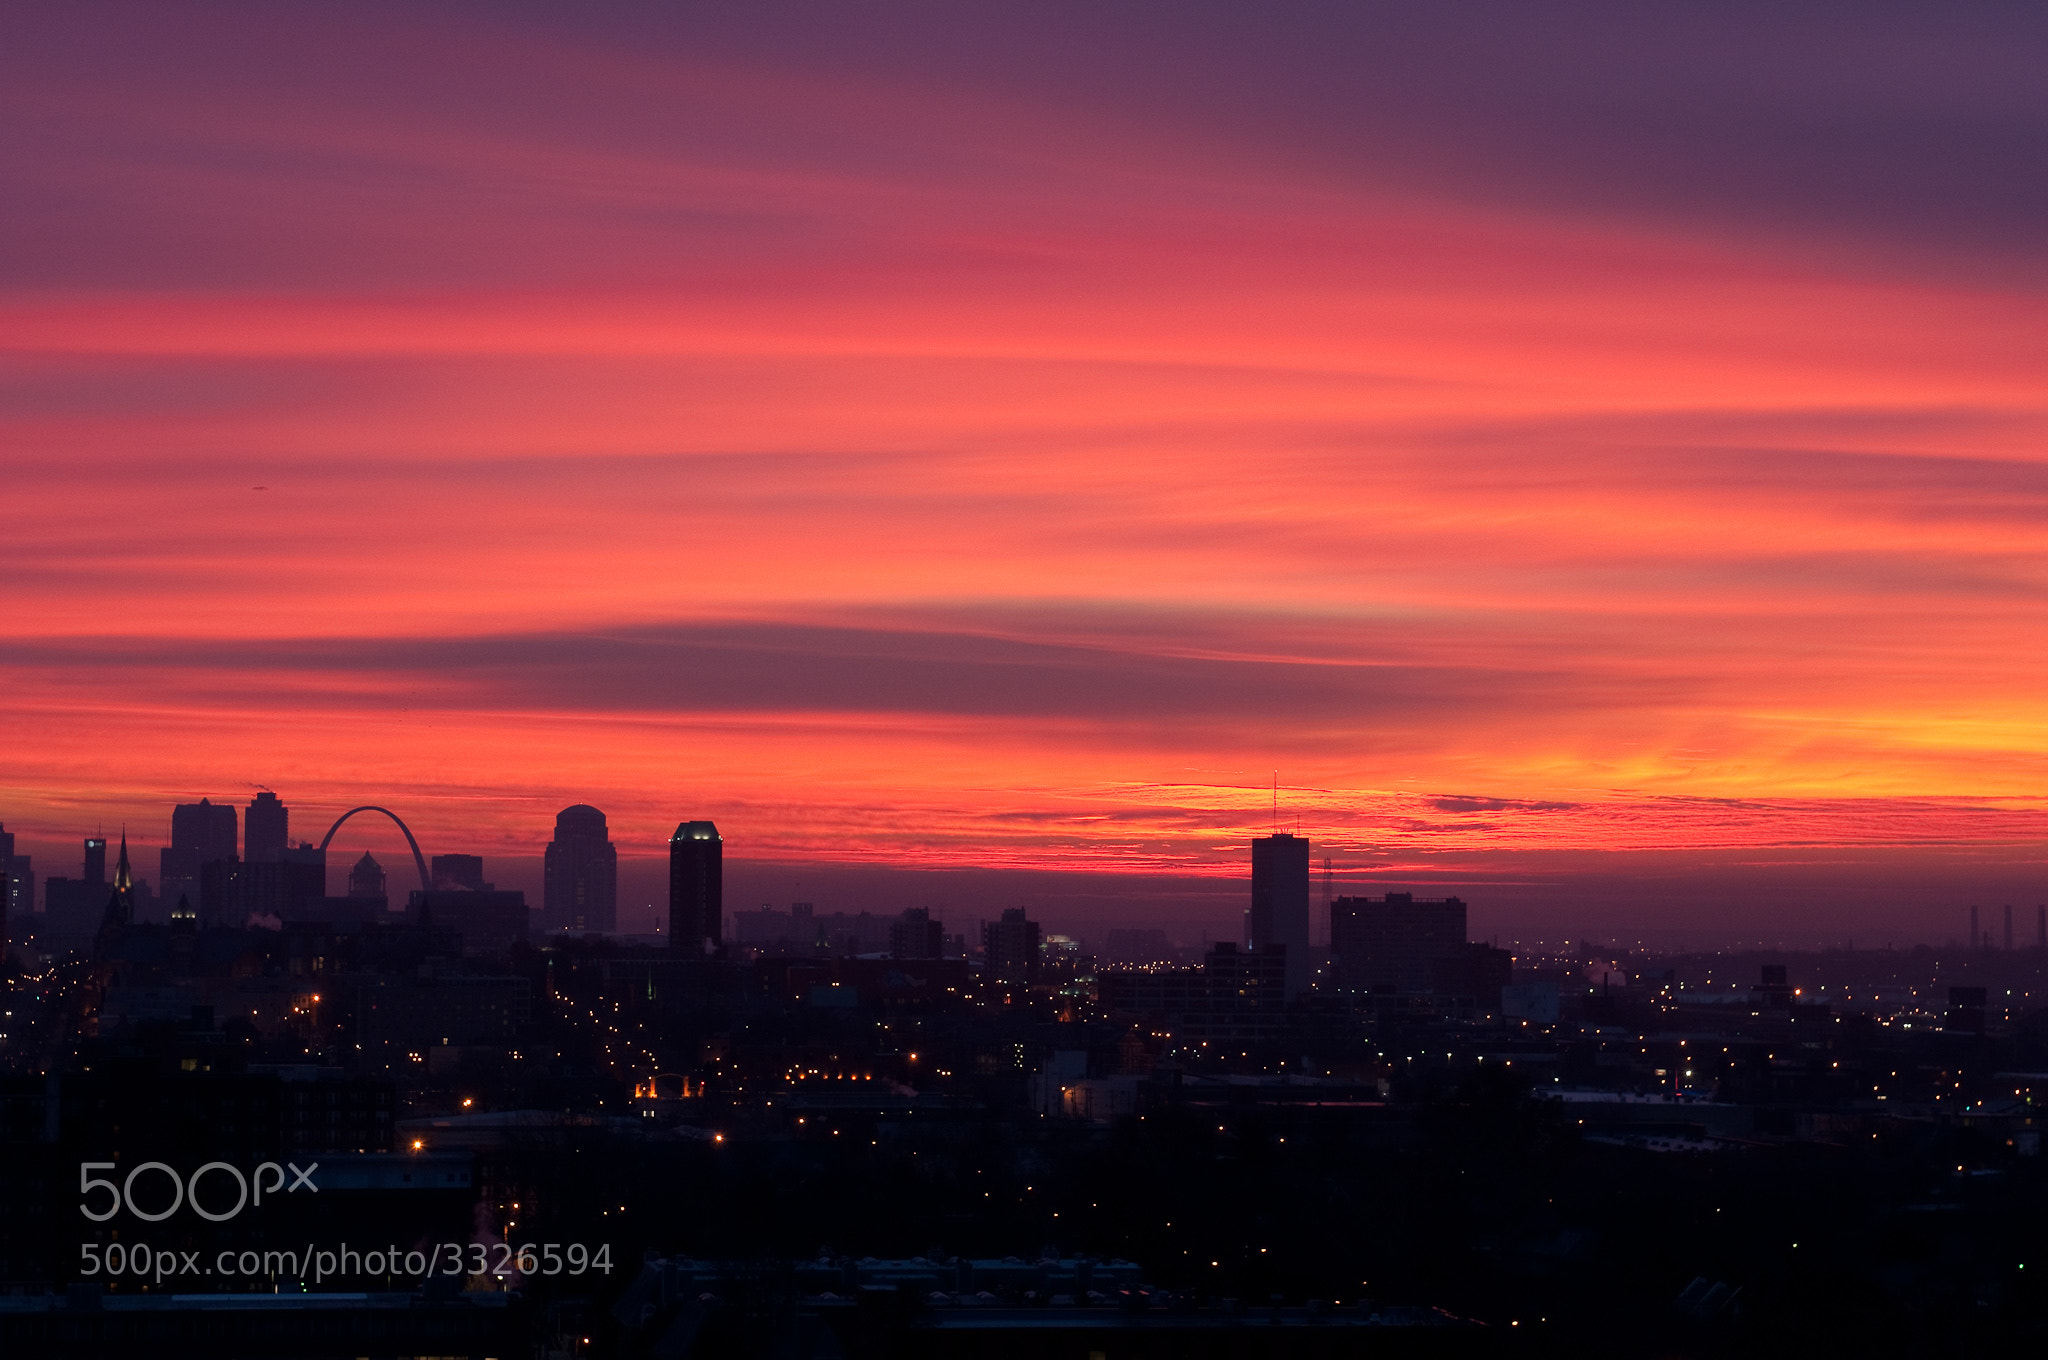 Sunrise in the City by Doug Weber / 500px